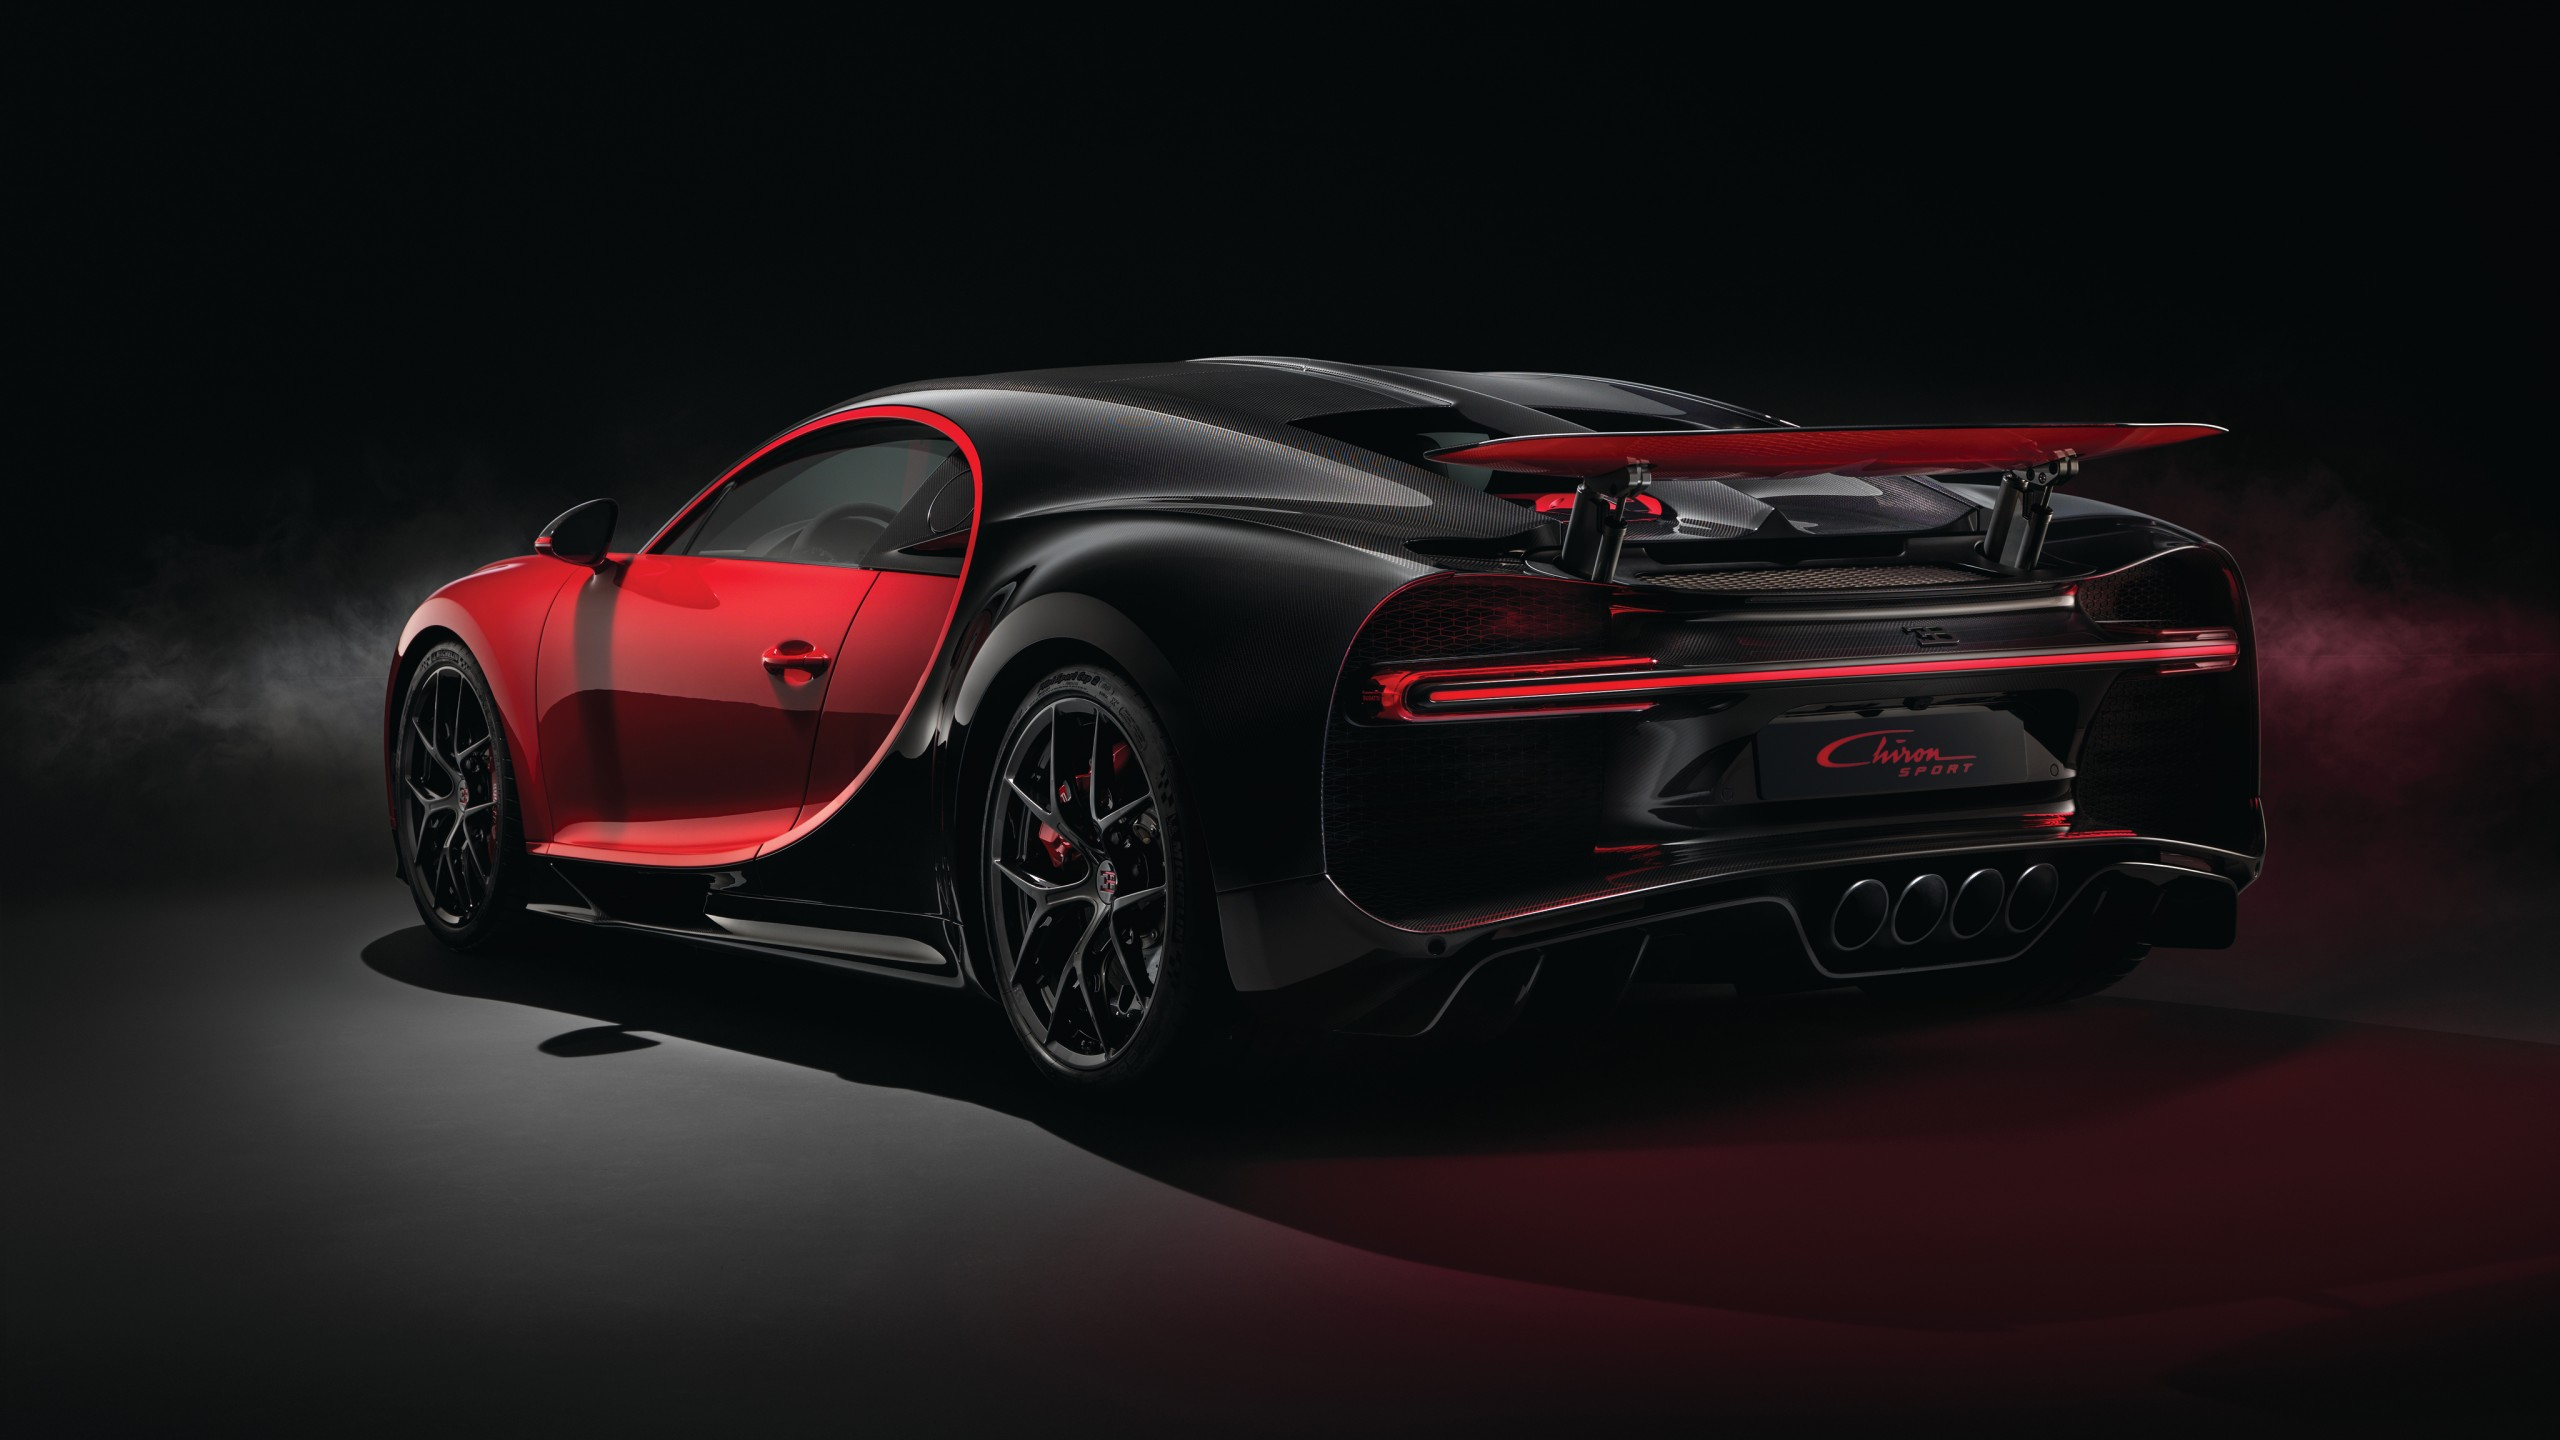 2018 Bugatti Chiron Sport 4k 6 Wallpaper Hd Car HD Wallpapers Download free images and photos [musssic.tk]